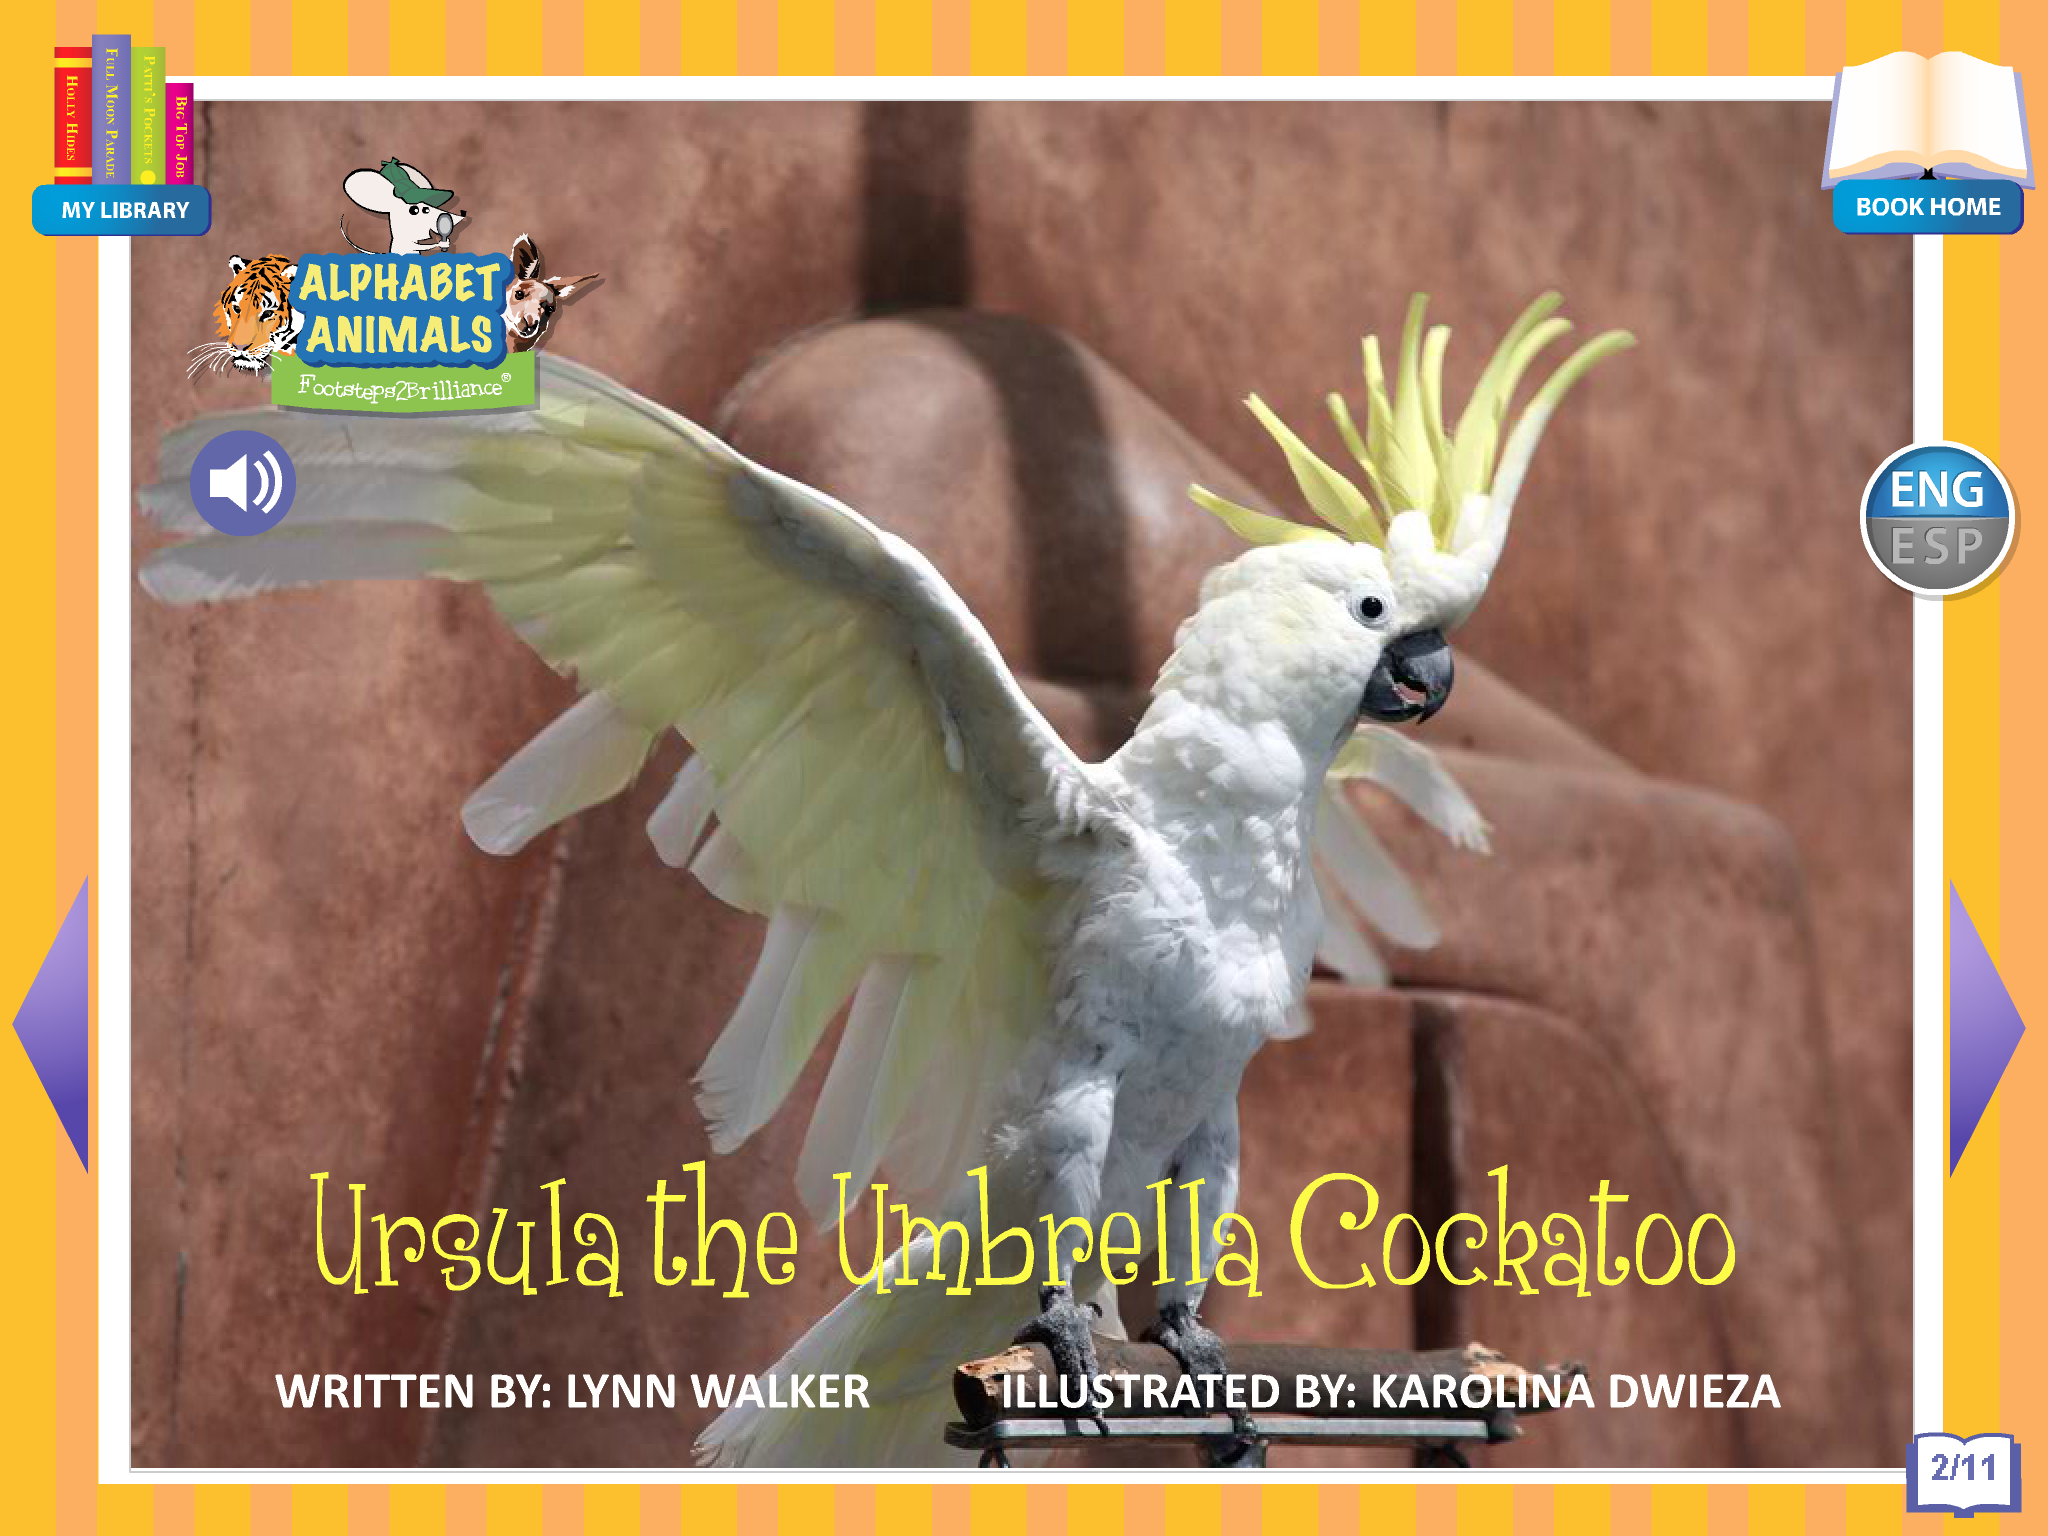 Footsteps2Brilliance's Ursula The Umbrella Cockatoo, 1 of 26 ebooks in our Alphabet Animals series library of non fiction ebooks. A whimsical approach to materials focused on stem topics with 40 additional games in this series, beautifully illustrated ENG/ESP Bilingual interactive ebook for the pre-K through third grade learner.